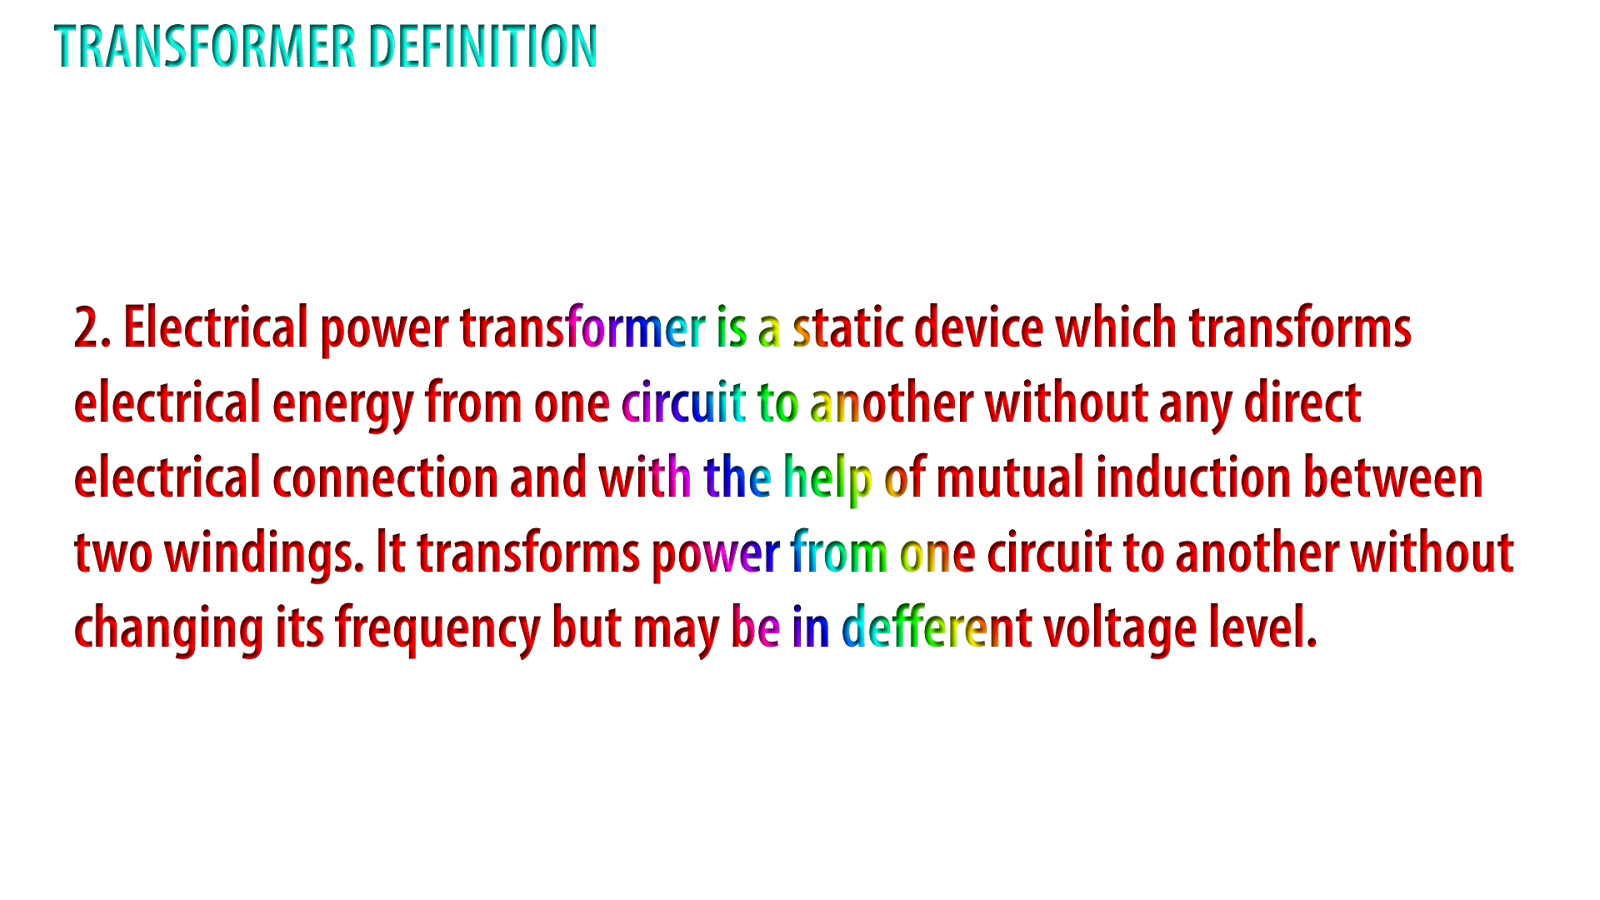 basic electrical engineering: define electrical transformer